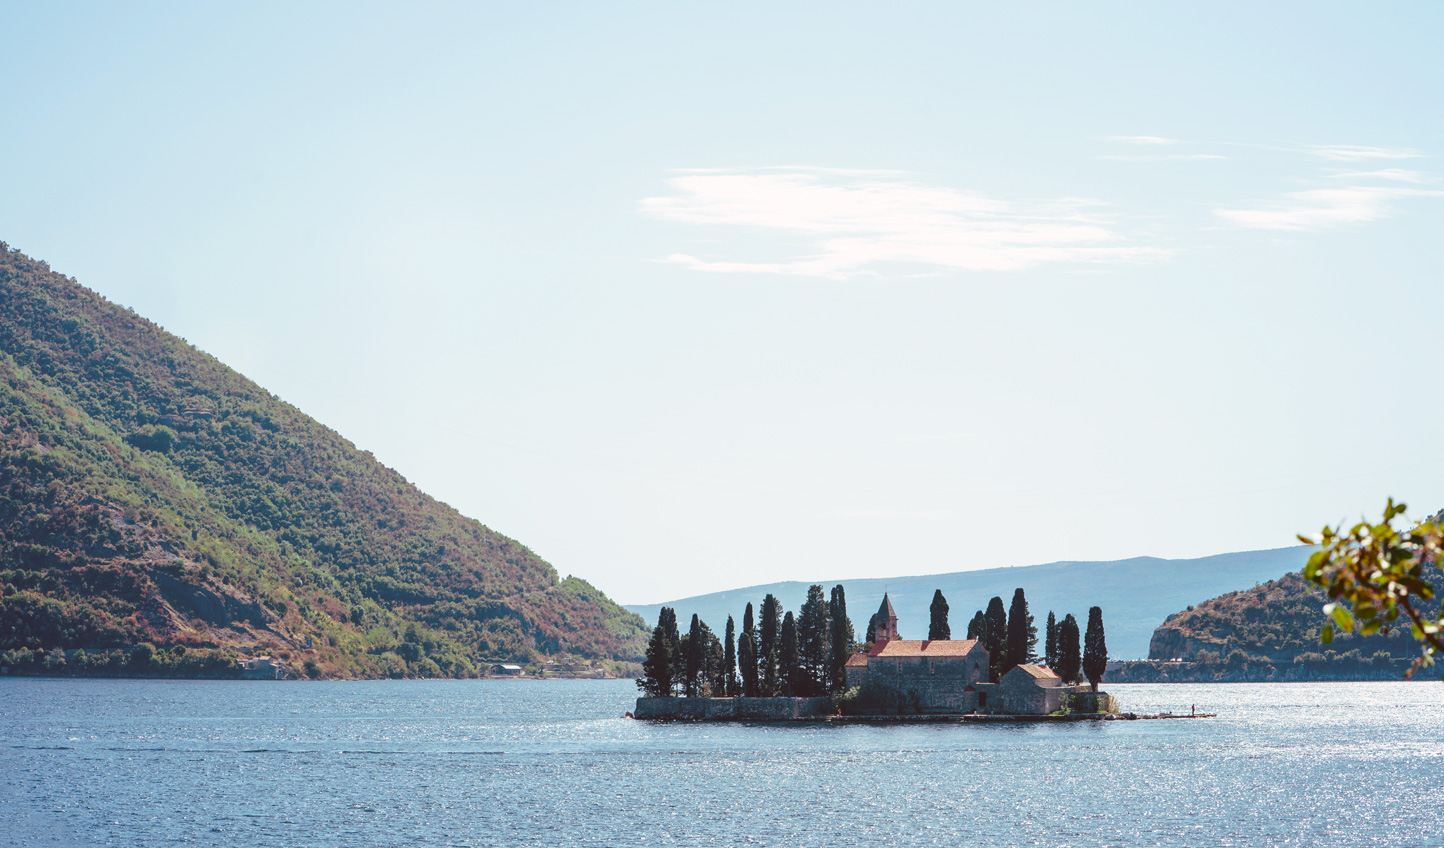 Sail out to Perast Island, listening to tales of local folklore